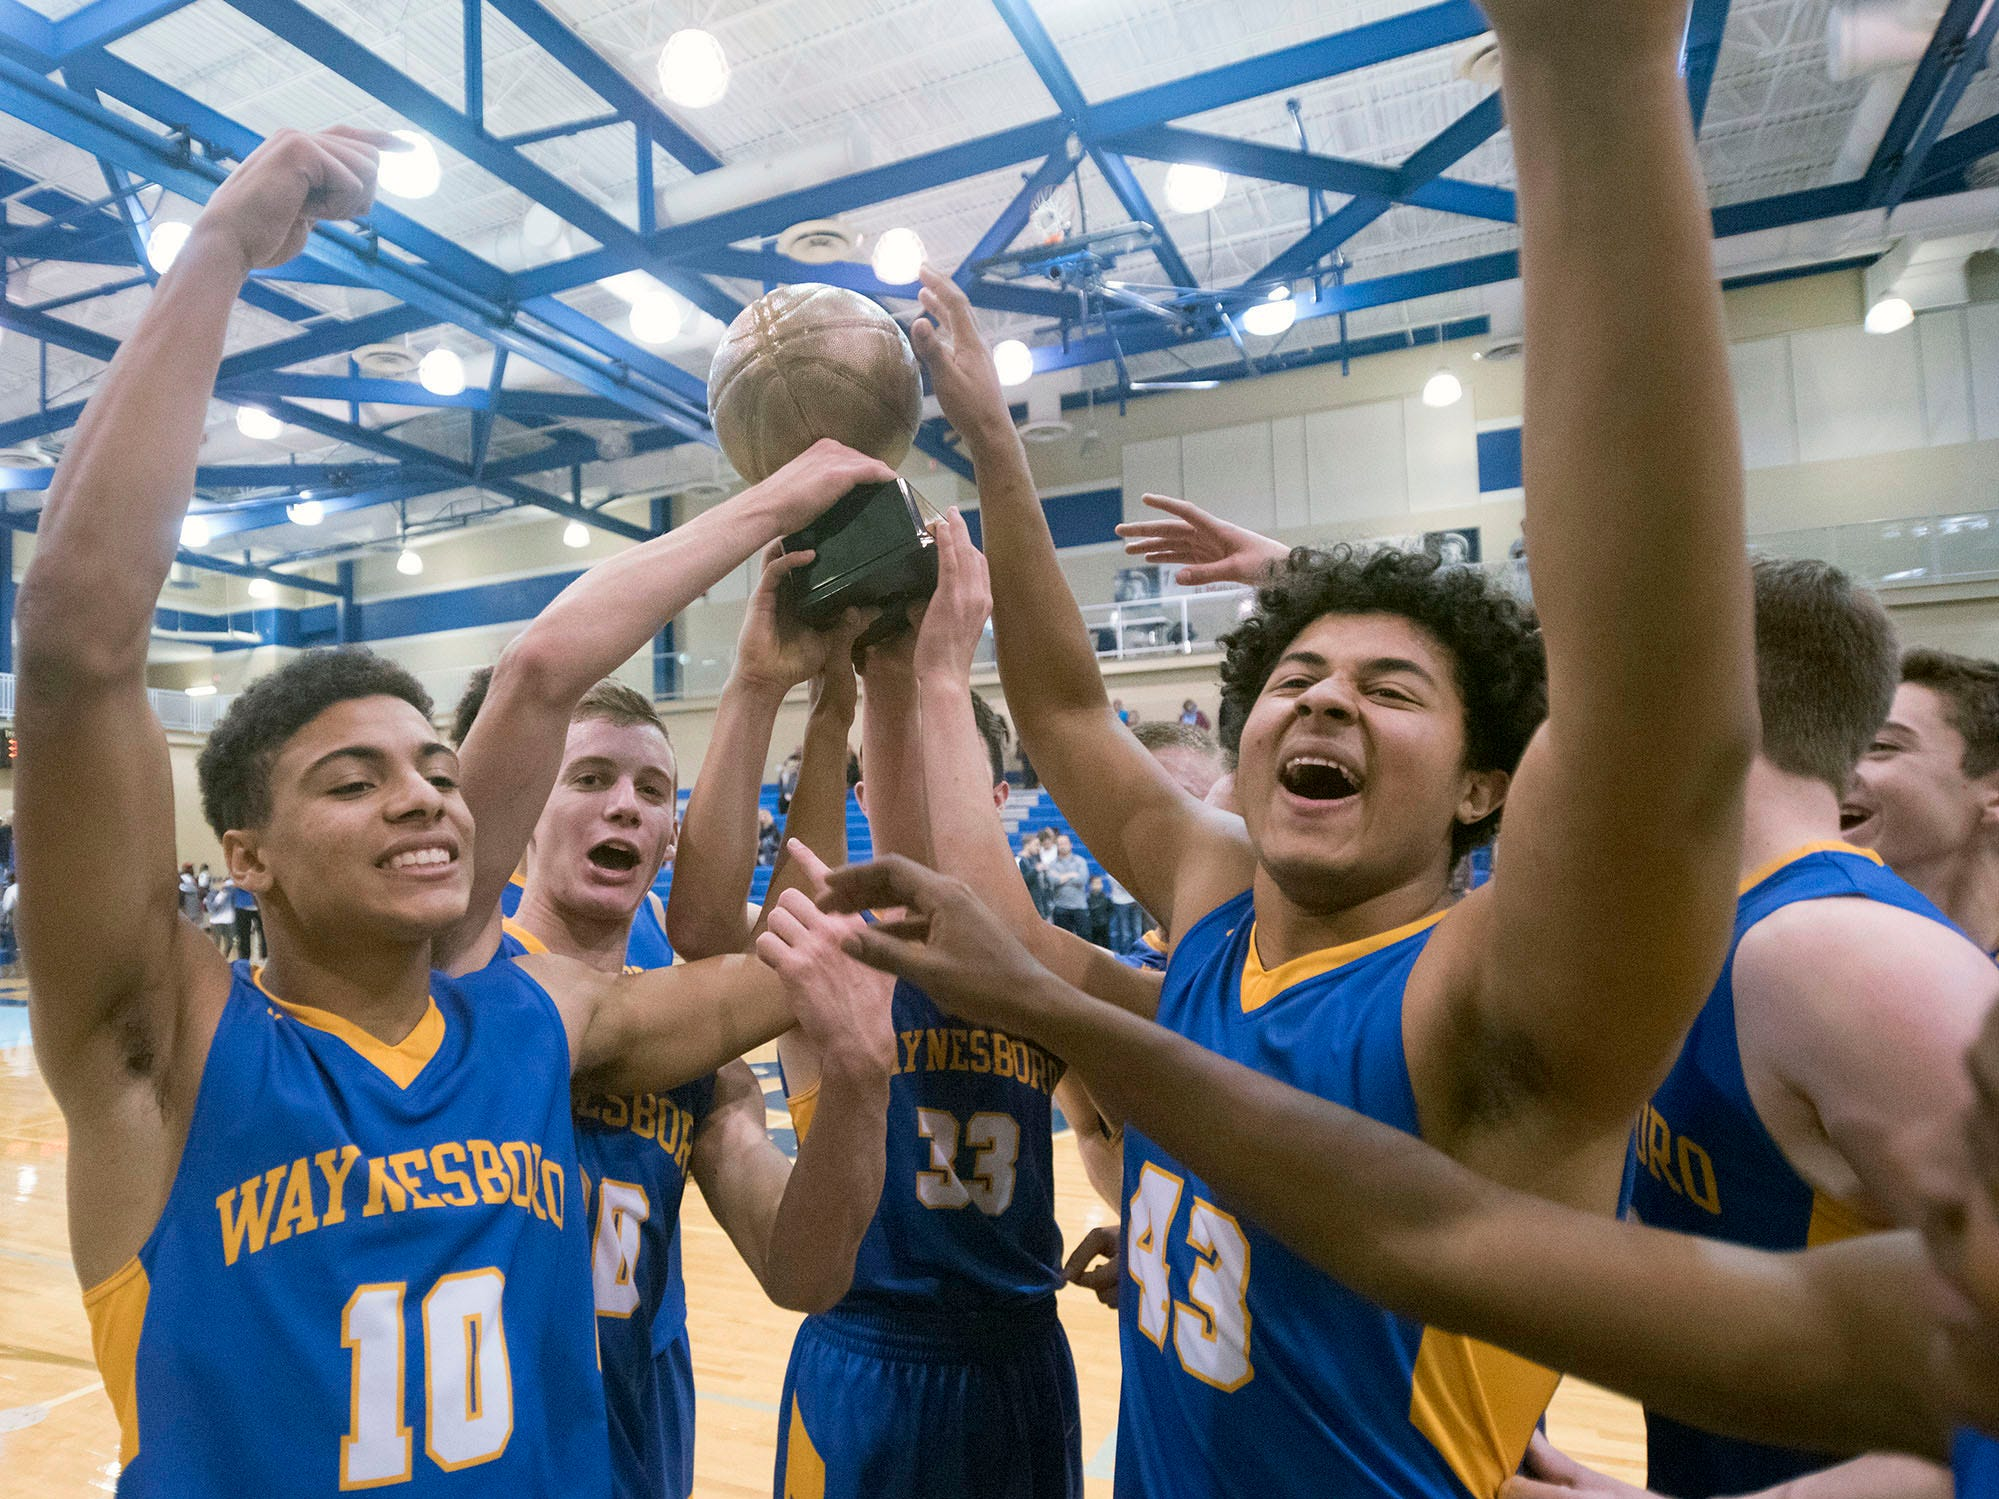 Waynesboro teammates carry theeir trophy after defeating Chambersburg 42-39. Chambersburg played Waynesboro during the finals at Franklin County Tip-Off Tournament, Saturday, Dec. 8, 2018.